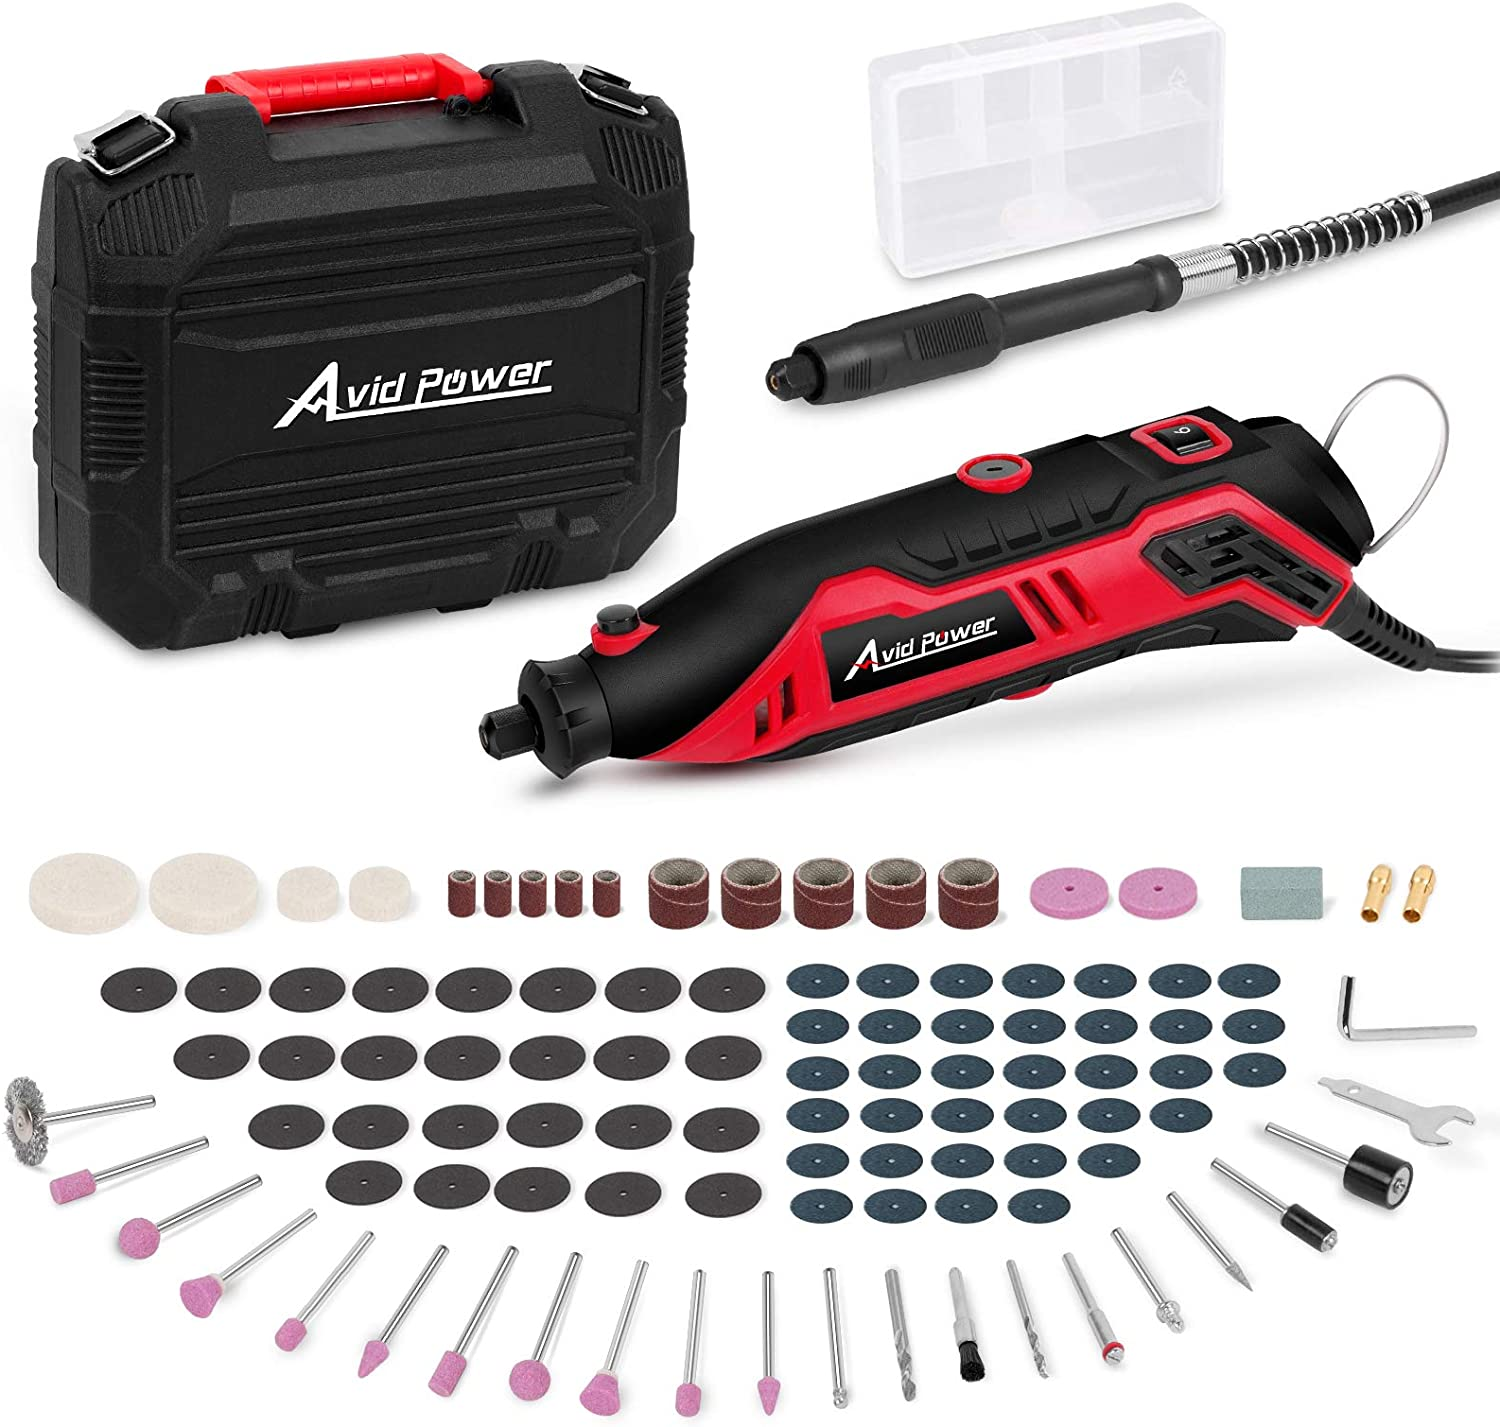 Avid Power 12v Rotary Tool Kit Variable Speed With Flex Shaft 107pcs Accessories And Carrying Case For Grinding Cutting Wood Carving Sanding And Engraving Amazon Com